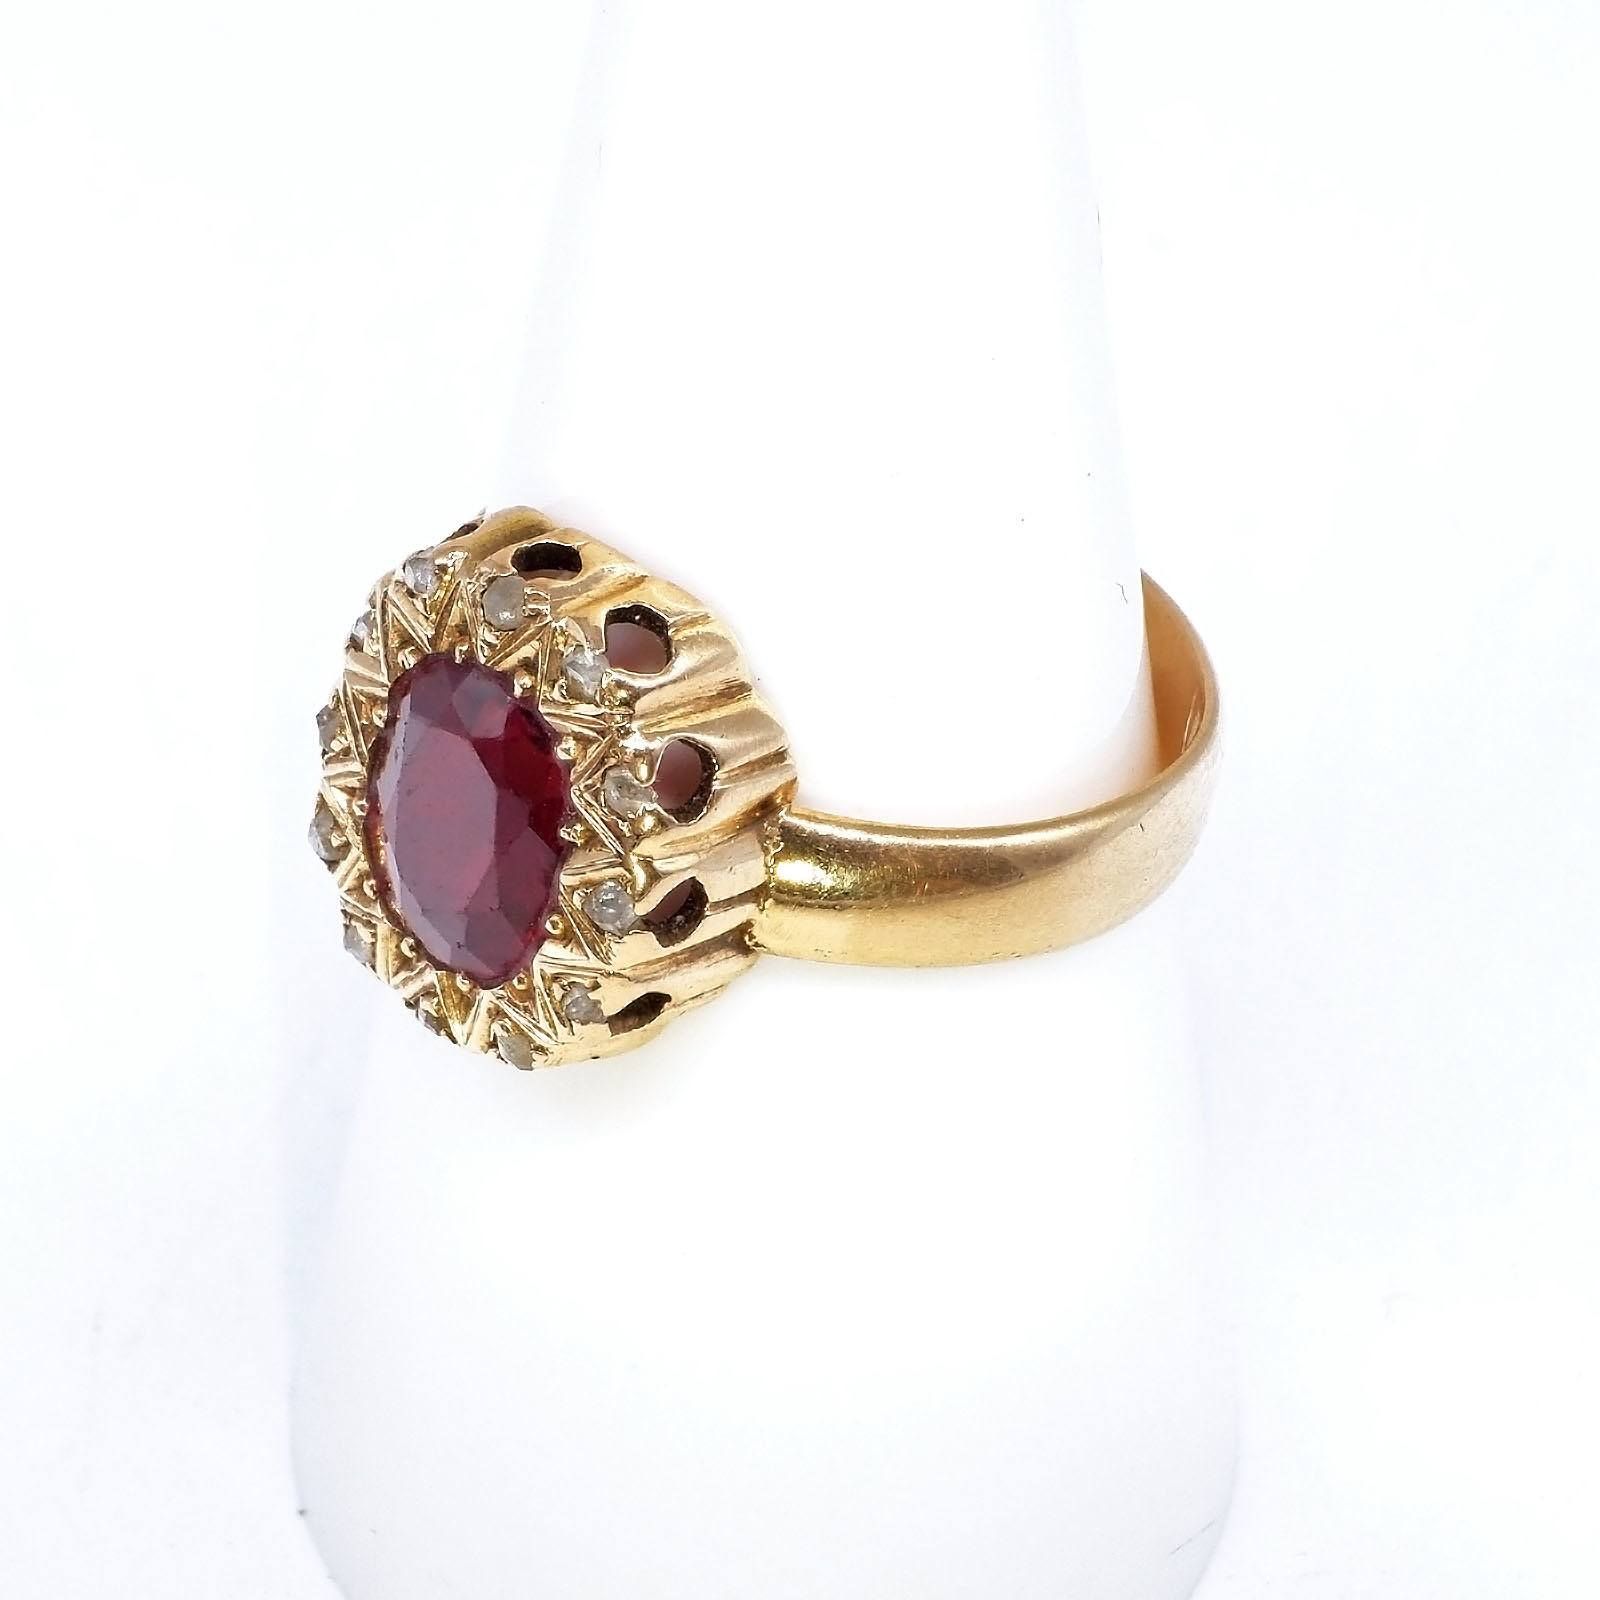 'Antique 15ct Yellow Gold Ring Oval Facetted Garnet Topped Doublet in Bead Setting, Border around Twelve Rose Cut/Uncut Diamonds Circa 1880, 4.5g'